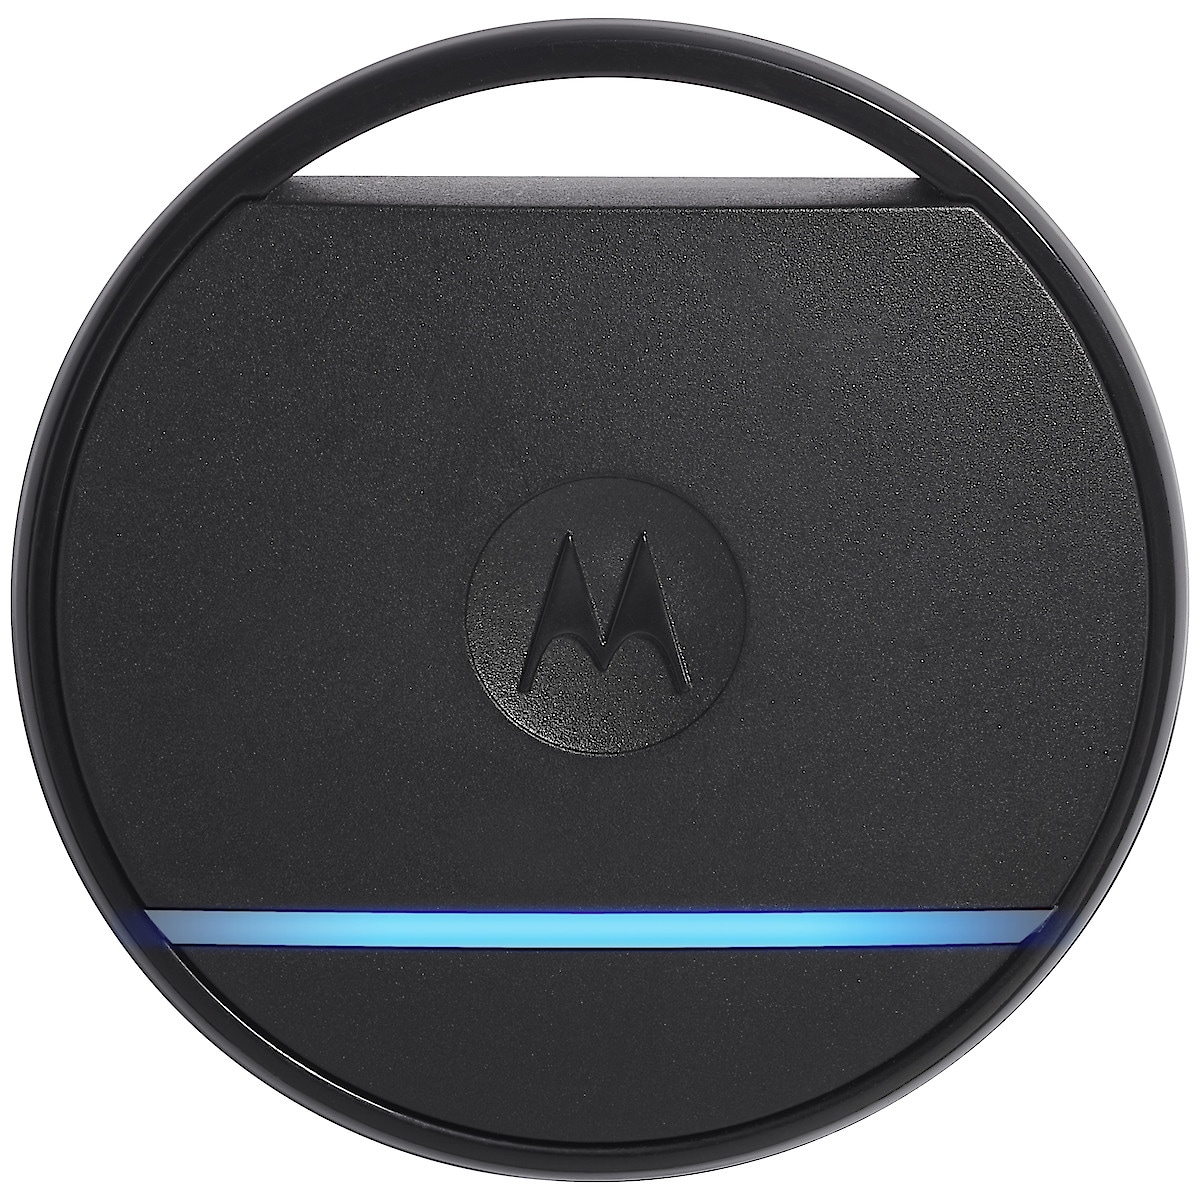 Motorola Connect Coin